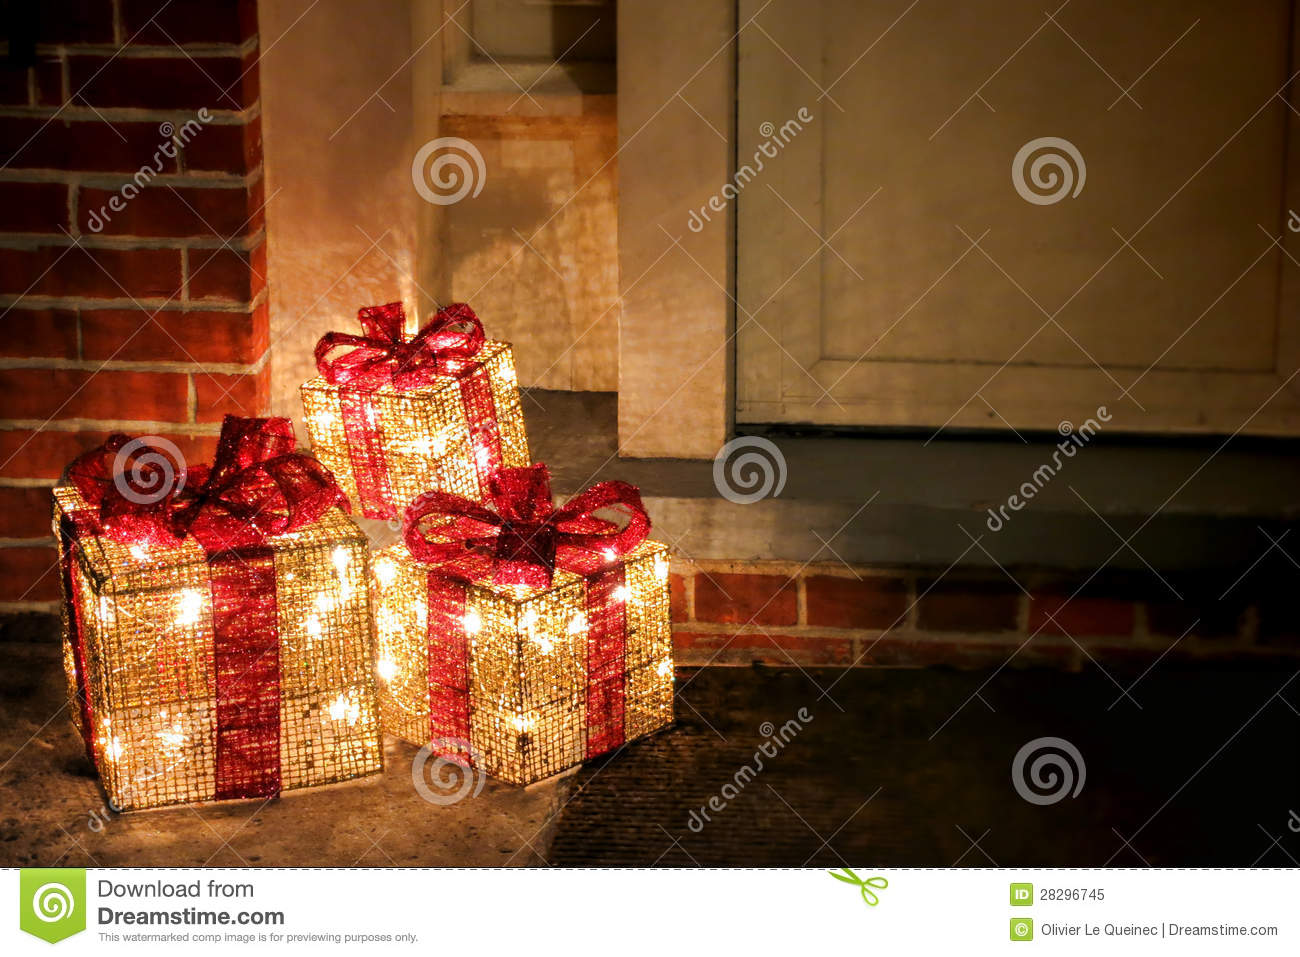 Lighted christmas gift boxes yard decor -  Box Diy Outdoor Xmas Decorations Royalty Free Stock Photo Download Lighted Decorated Christmas Gifts